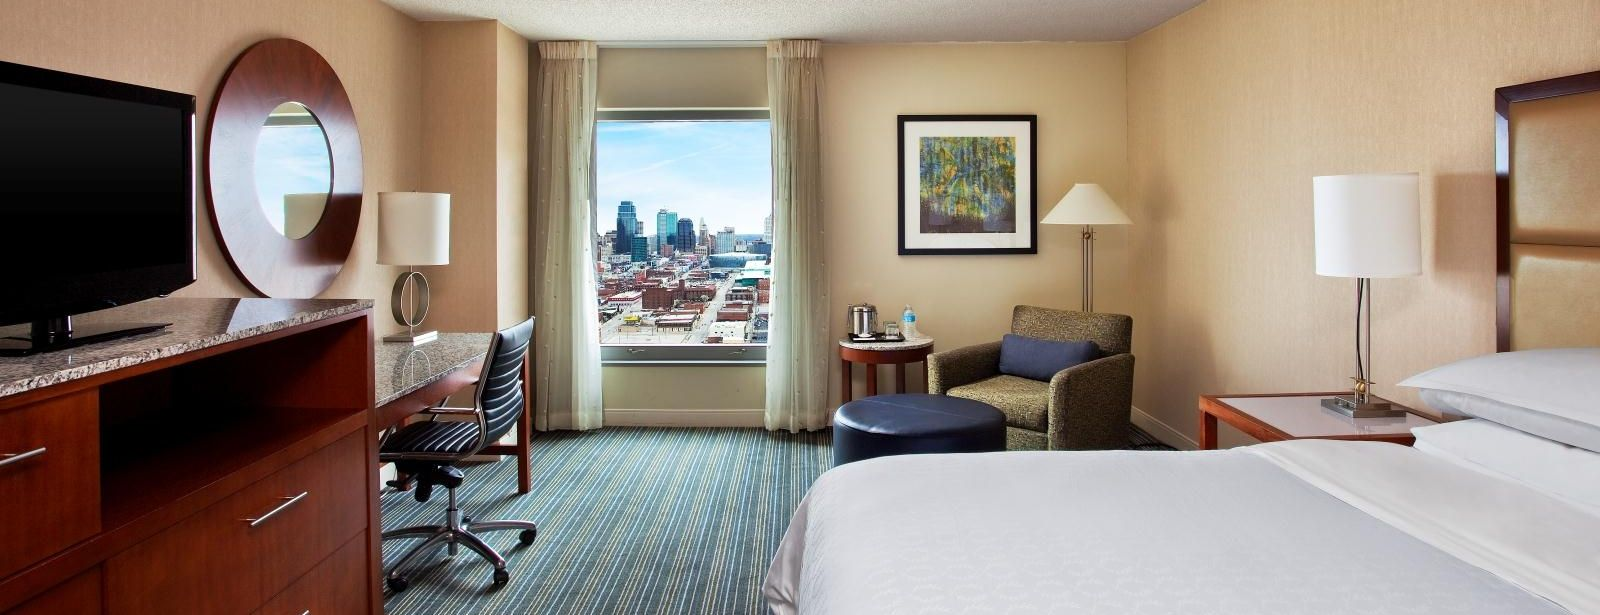 Kansas City Suites | Sheraton Kansas City Hotel at Crown Center